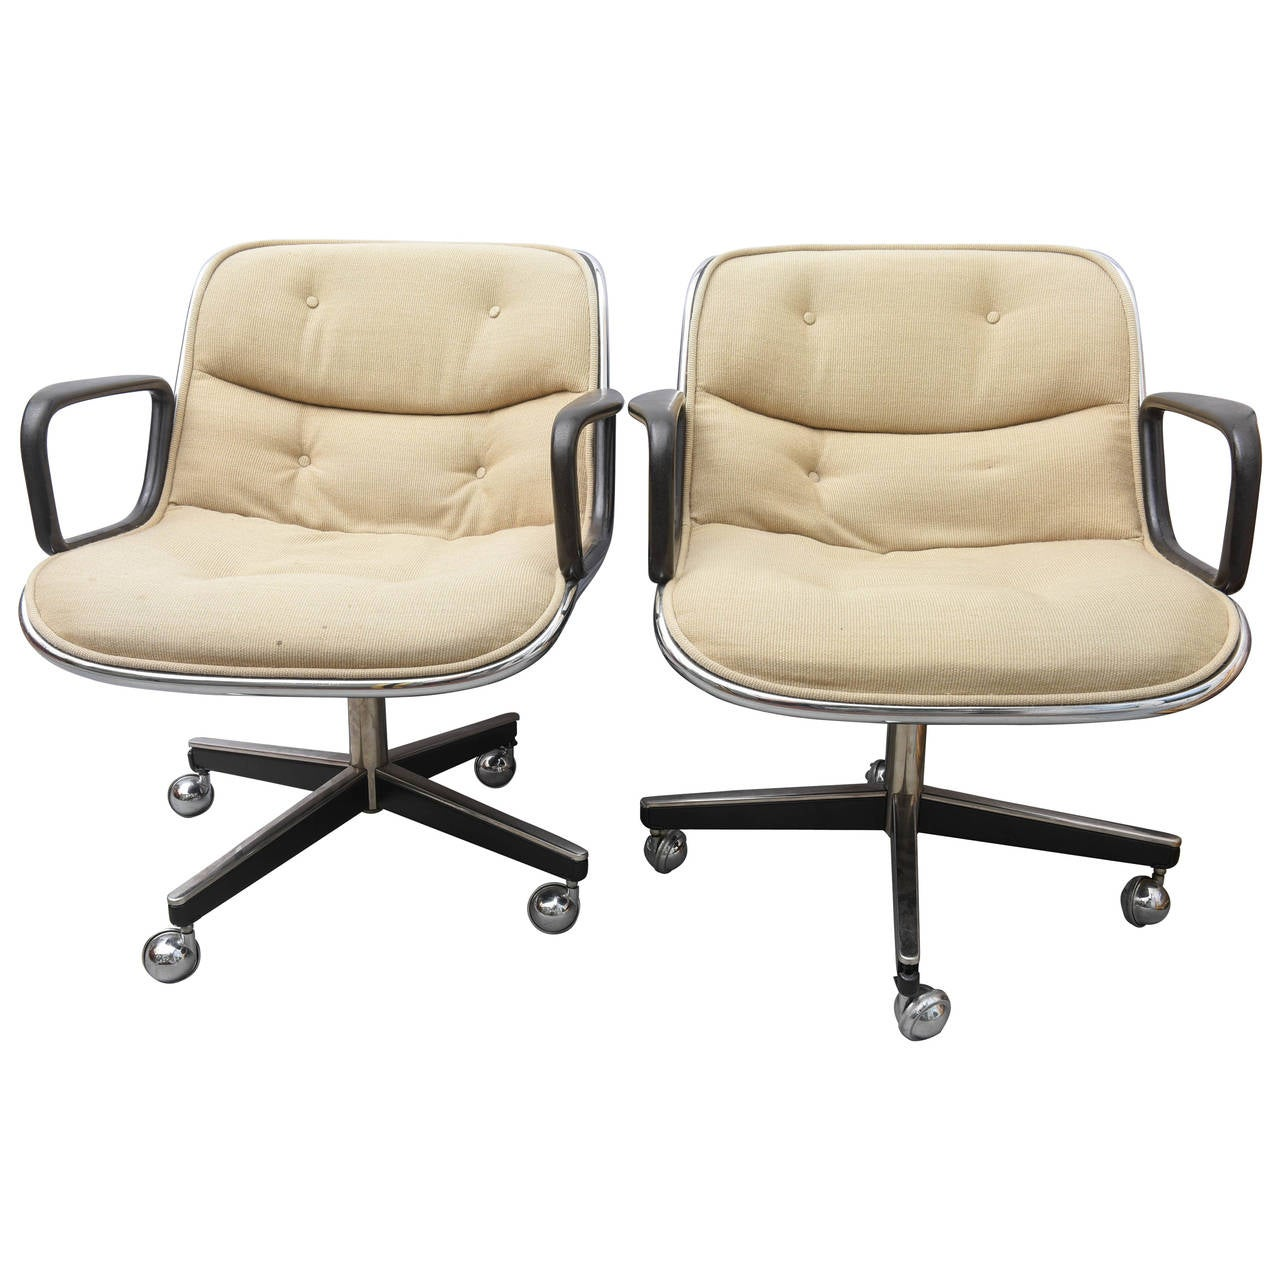 pollock executive chair replica inada dreamwave massage pair of charles for knoll chairs 1970s